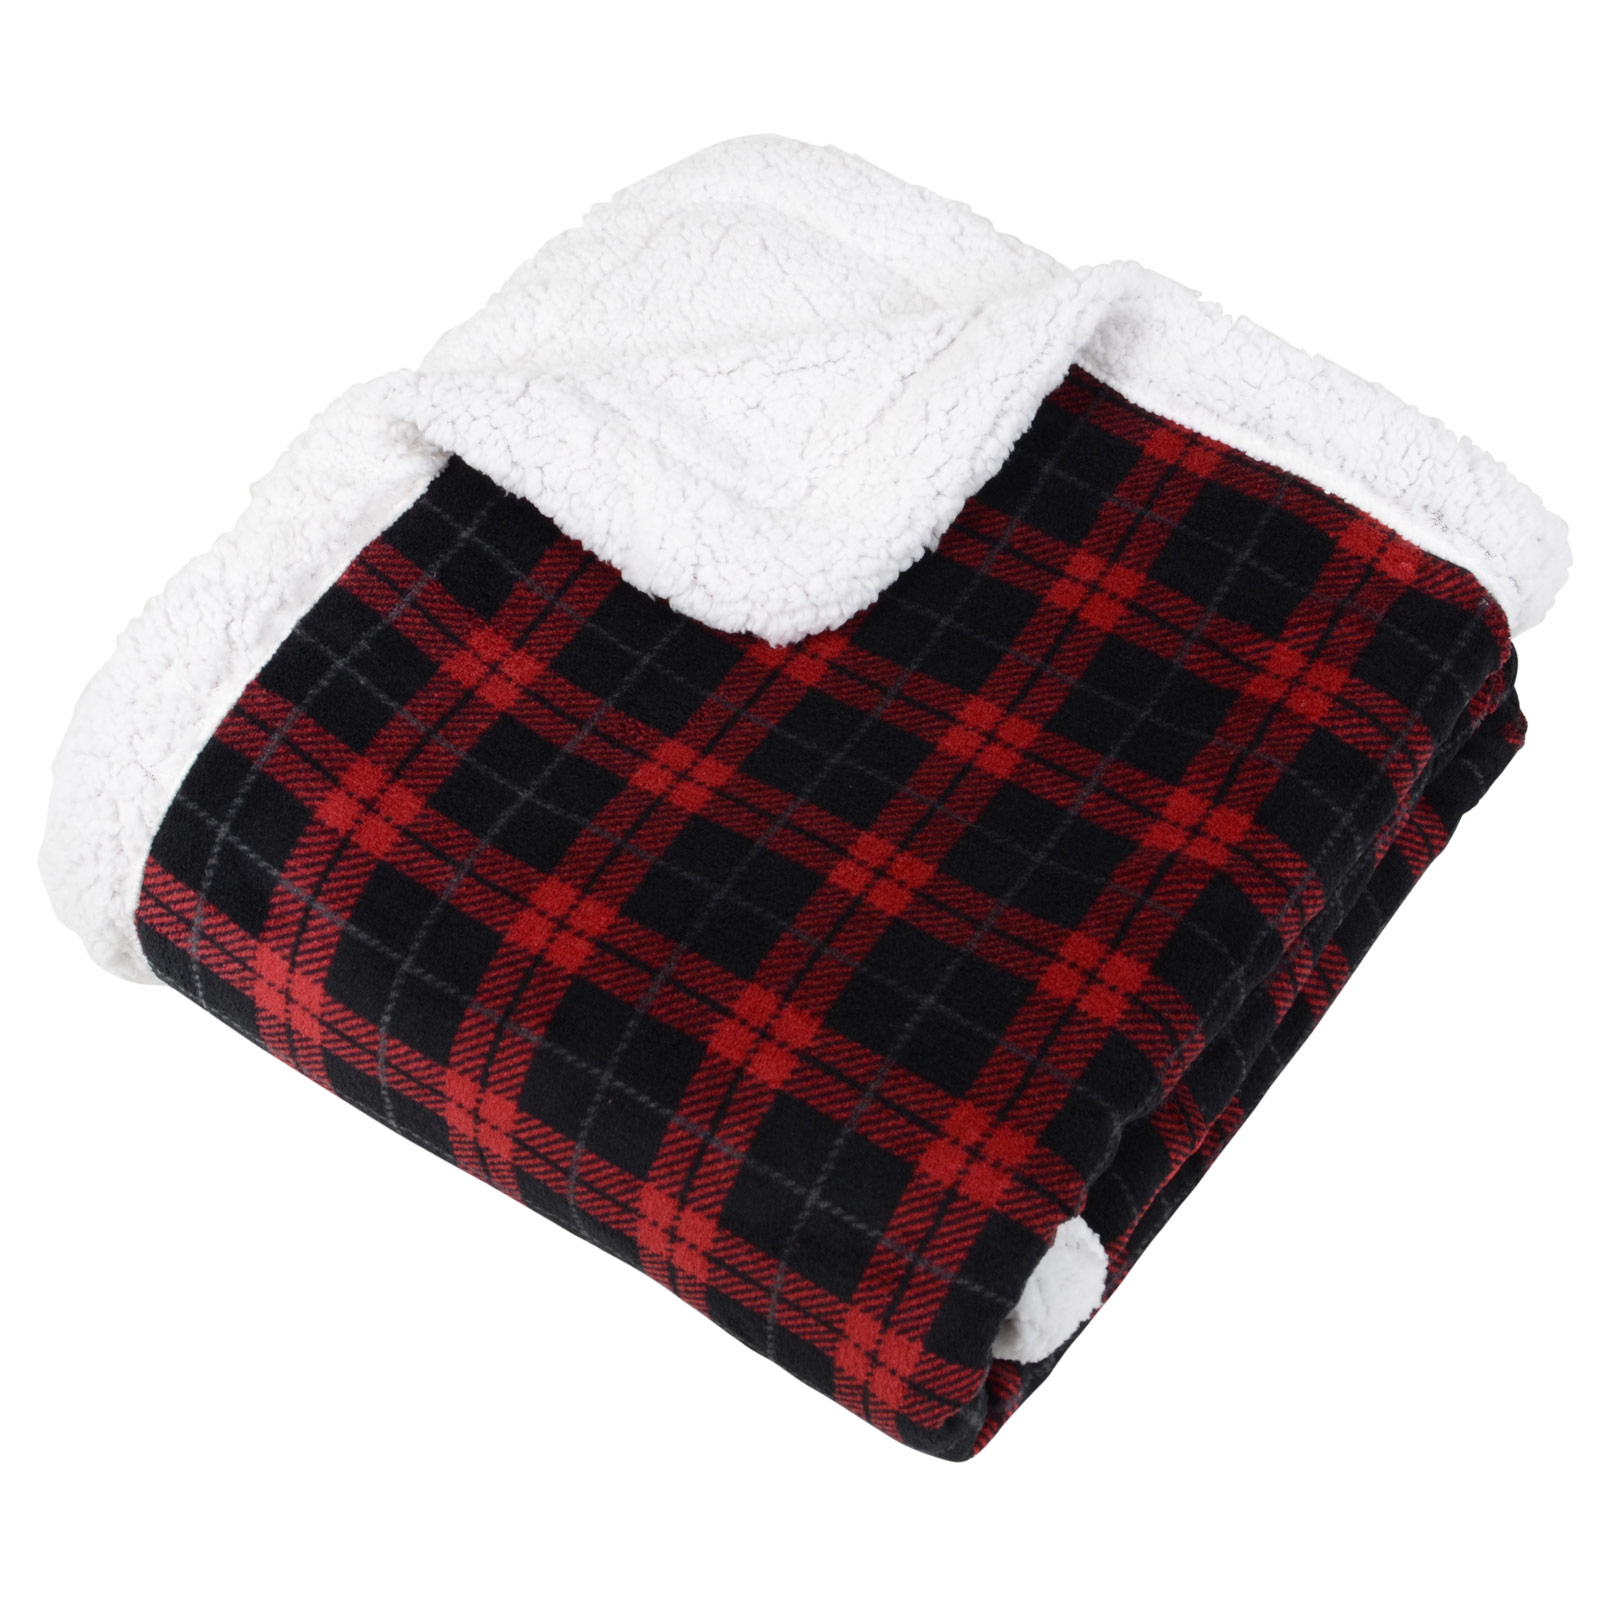 Tartan check warm fleece blanket soft sherpa luxury warm for Soft blankets and throws